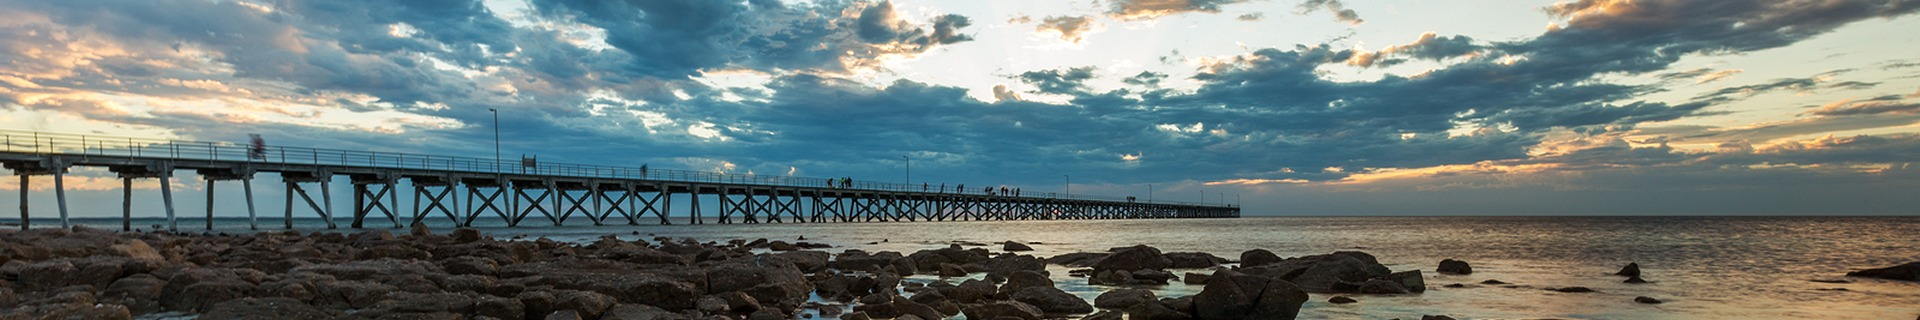 Sunset at the Port Hughes Jetty on Yorke Peninsula in South Australia Australia on 22nd February 2018